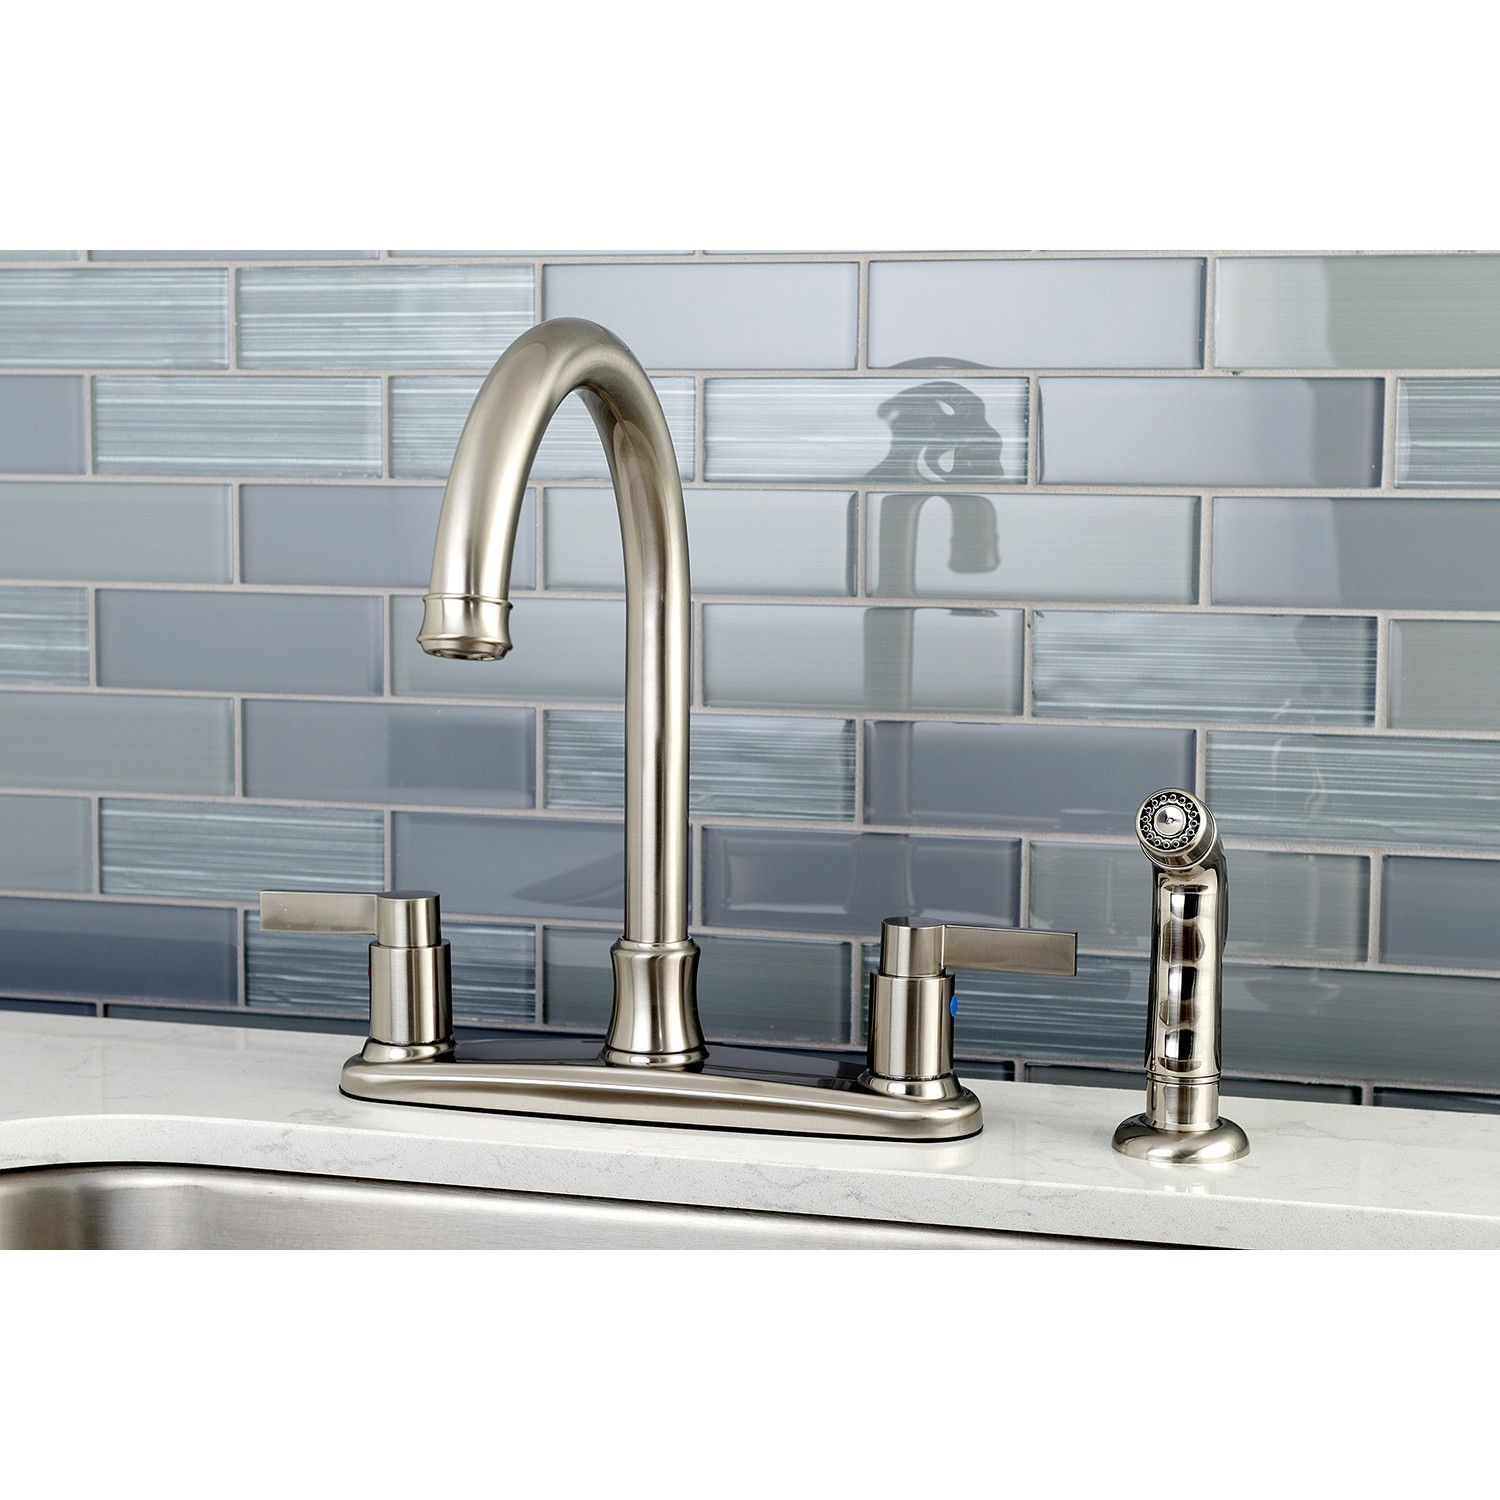 NuvoFusion Centerset Double Handle Kitchen Faucet with Side Spray